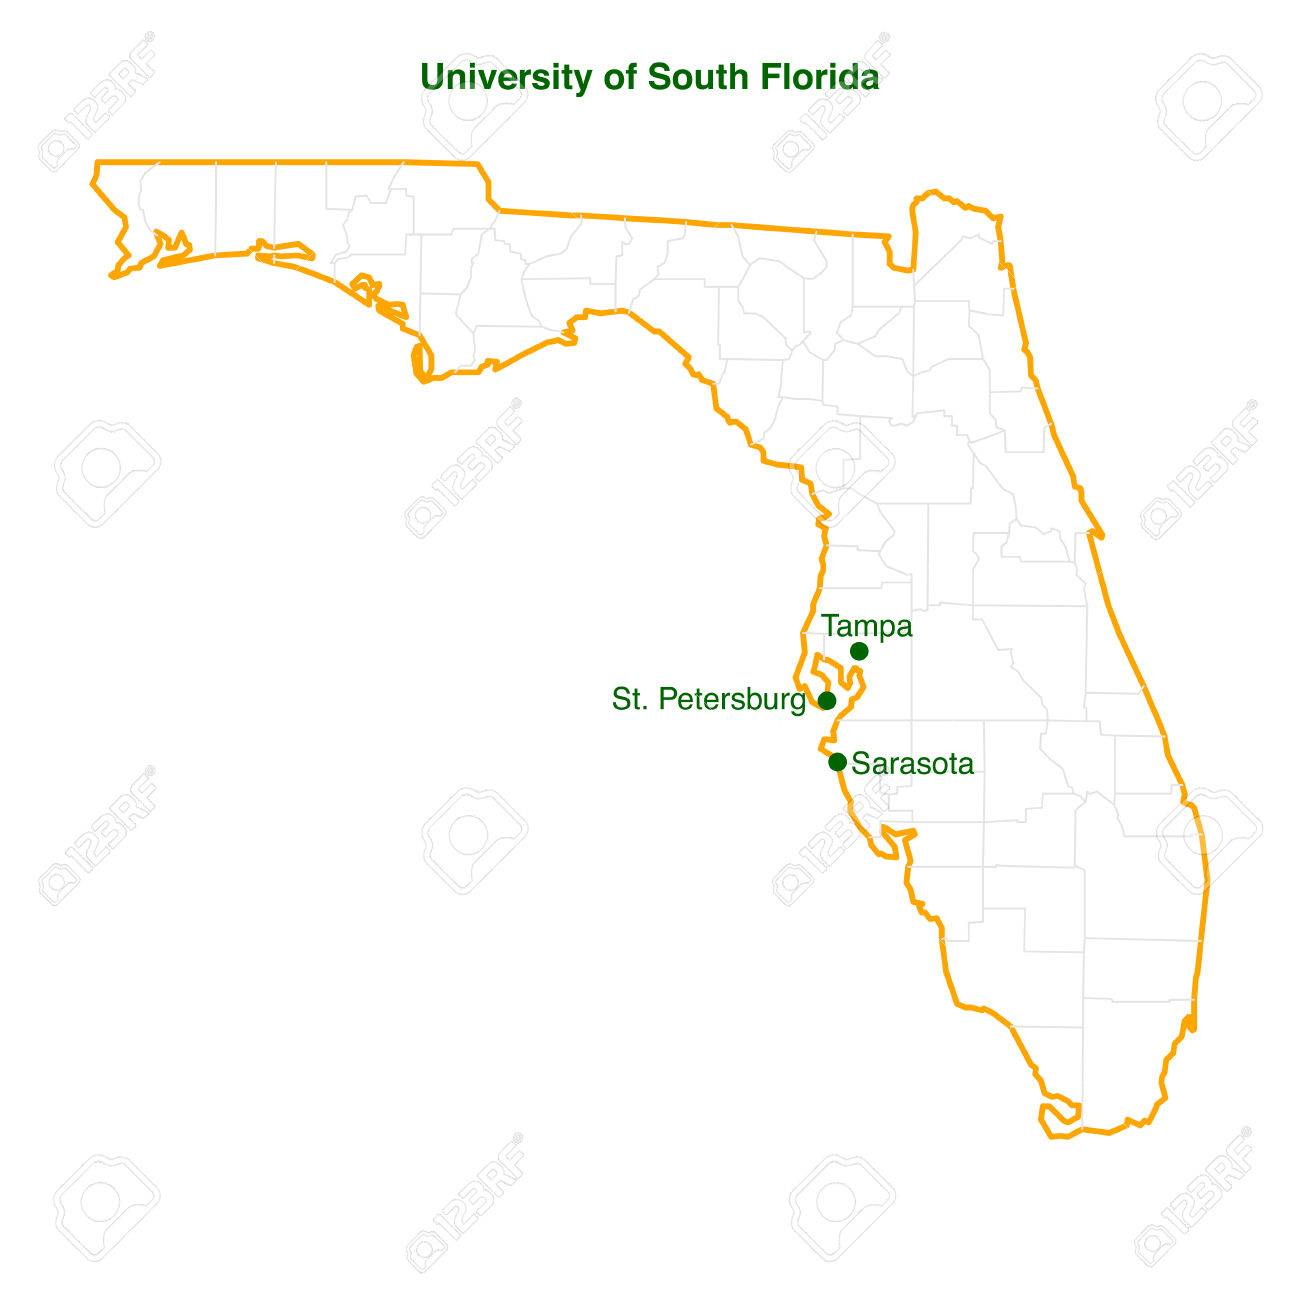 Diagram Collection Map Of Usf More Maps Diagram And Concept - Usf location map